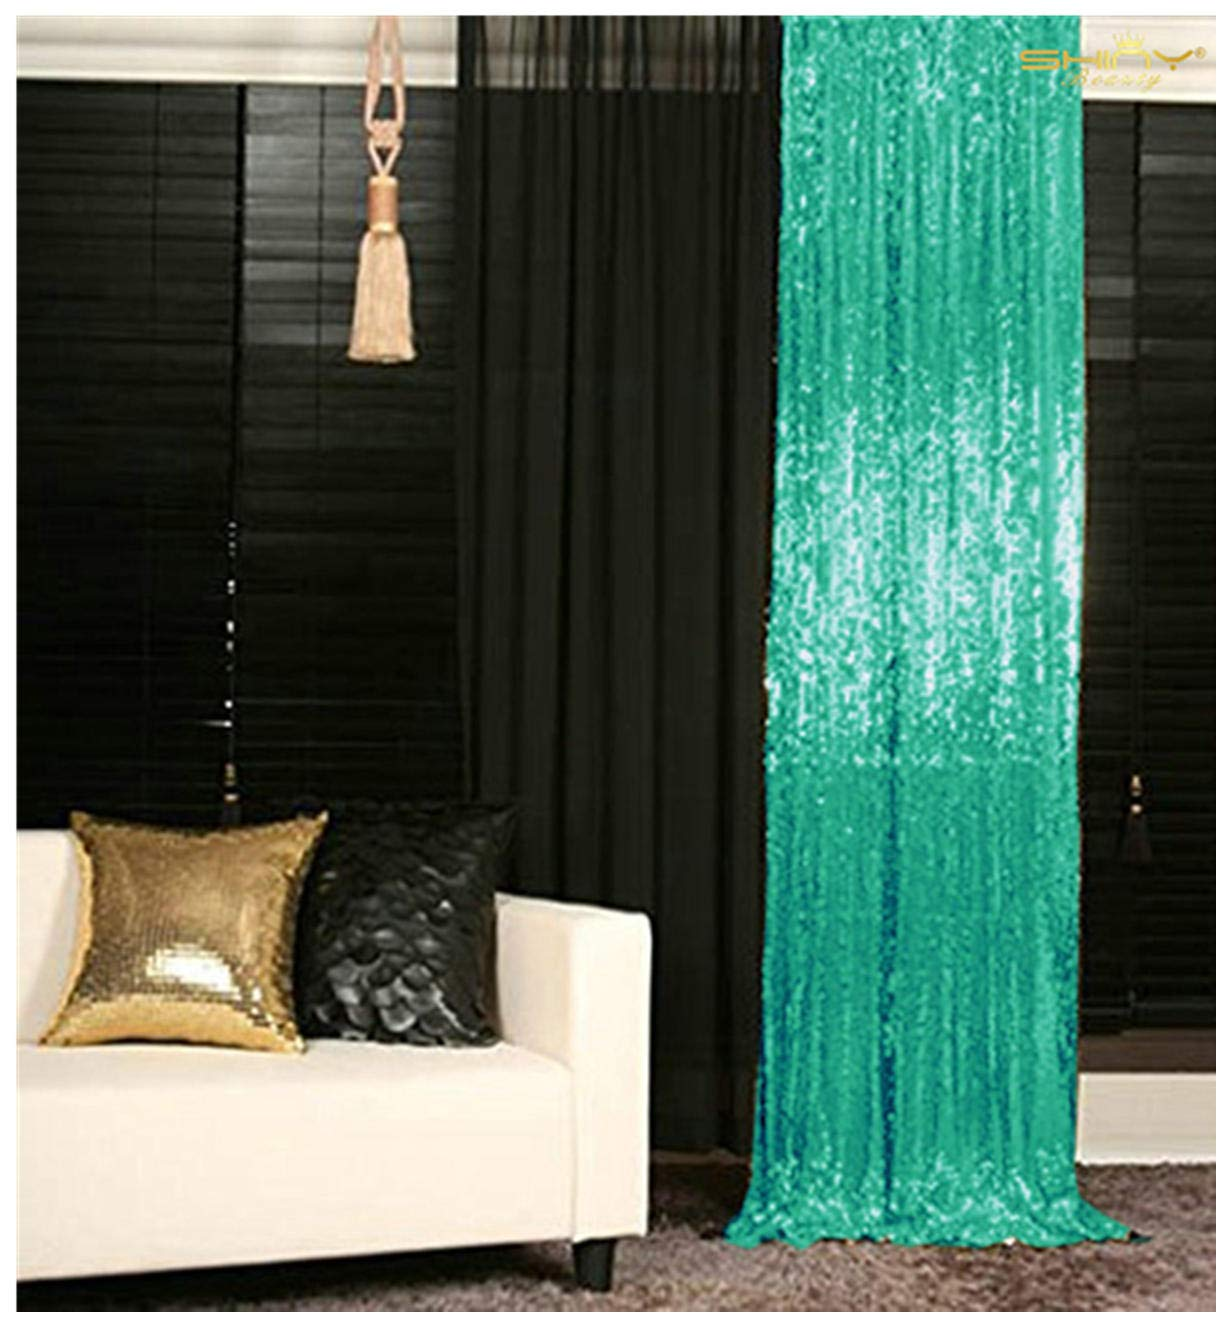 Sequin Curtains 4 Panels 2FTx8FT Matte Green Glitter Backdrop Curtain Teal 24x96-Inch Photo Backdrop Sequins Shower Curtain Set Wedding Decorations -190613J